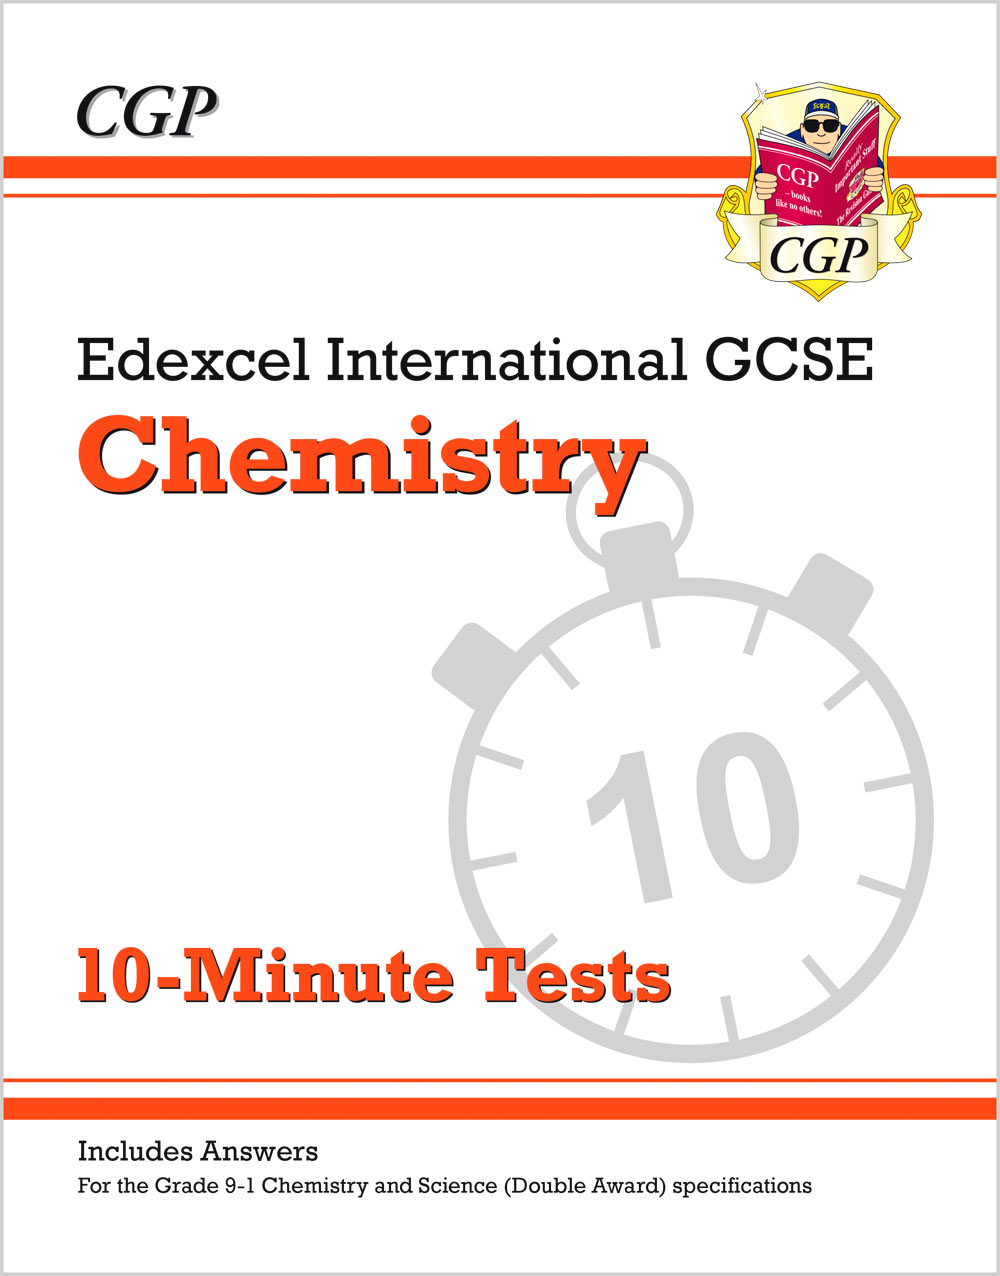 CEXPI41 - Grade 9-1 Edexcel International GCSE Chemistry: 10-Minute Tests (with answers)